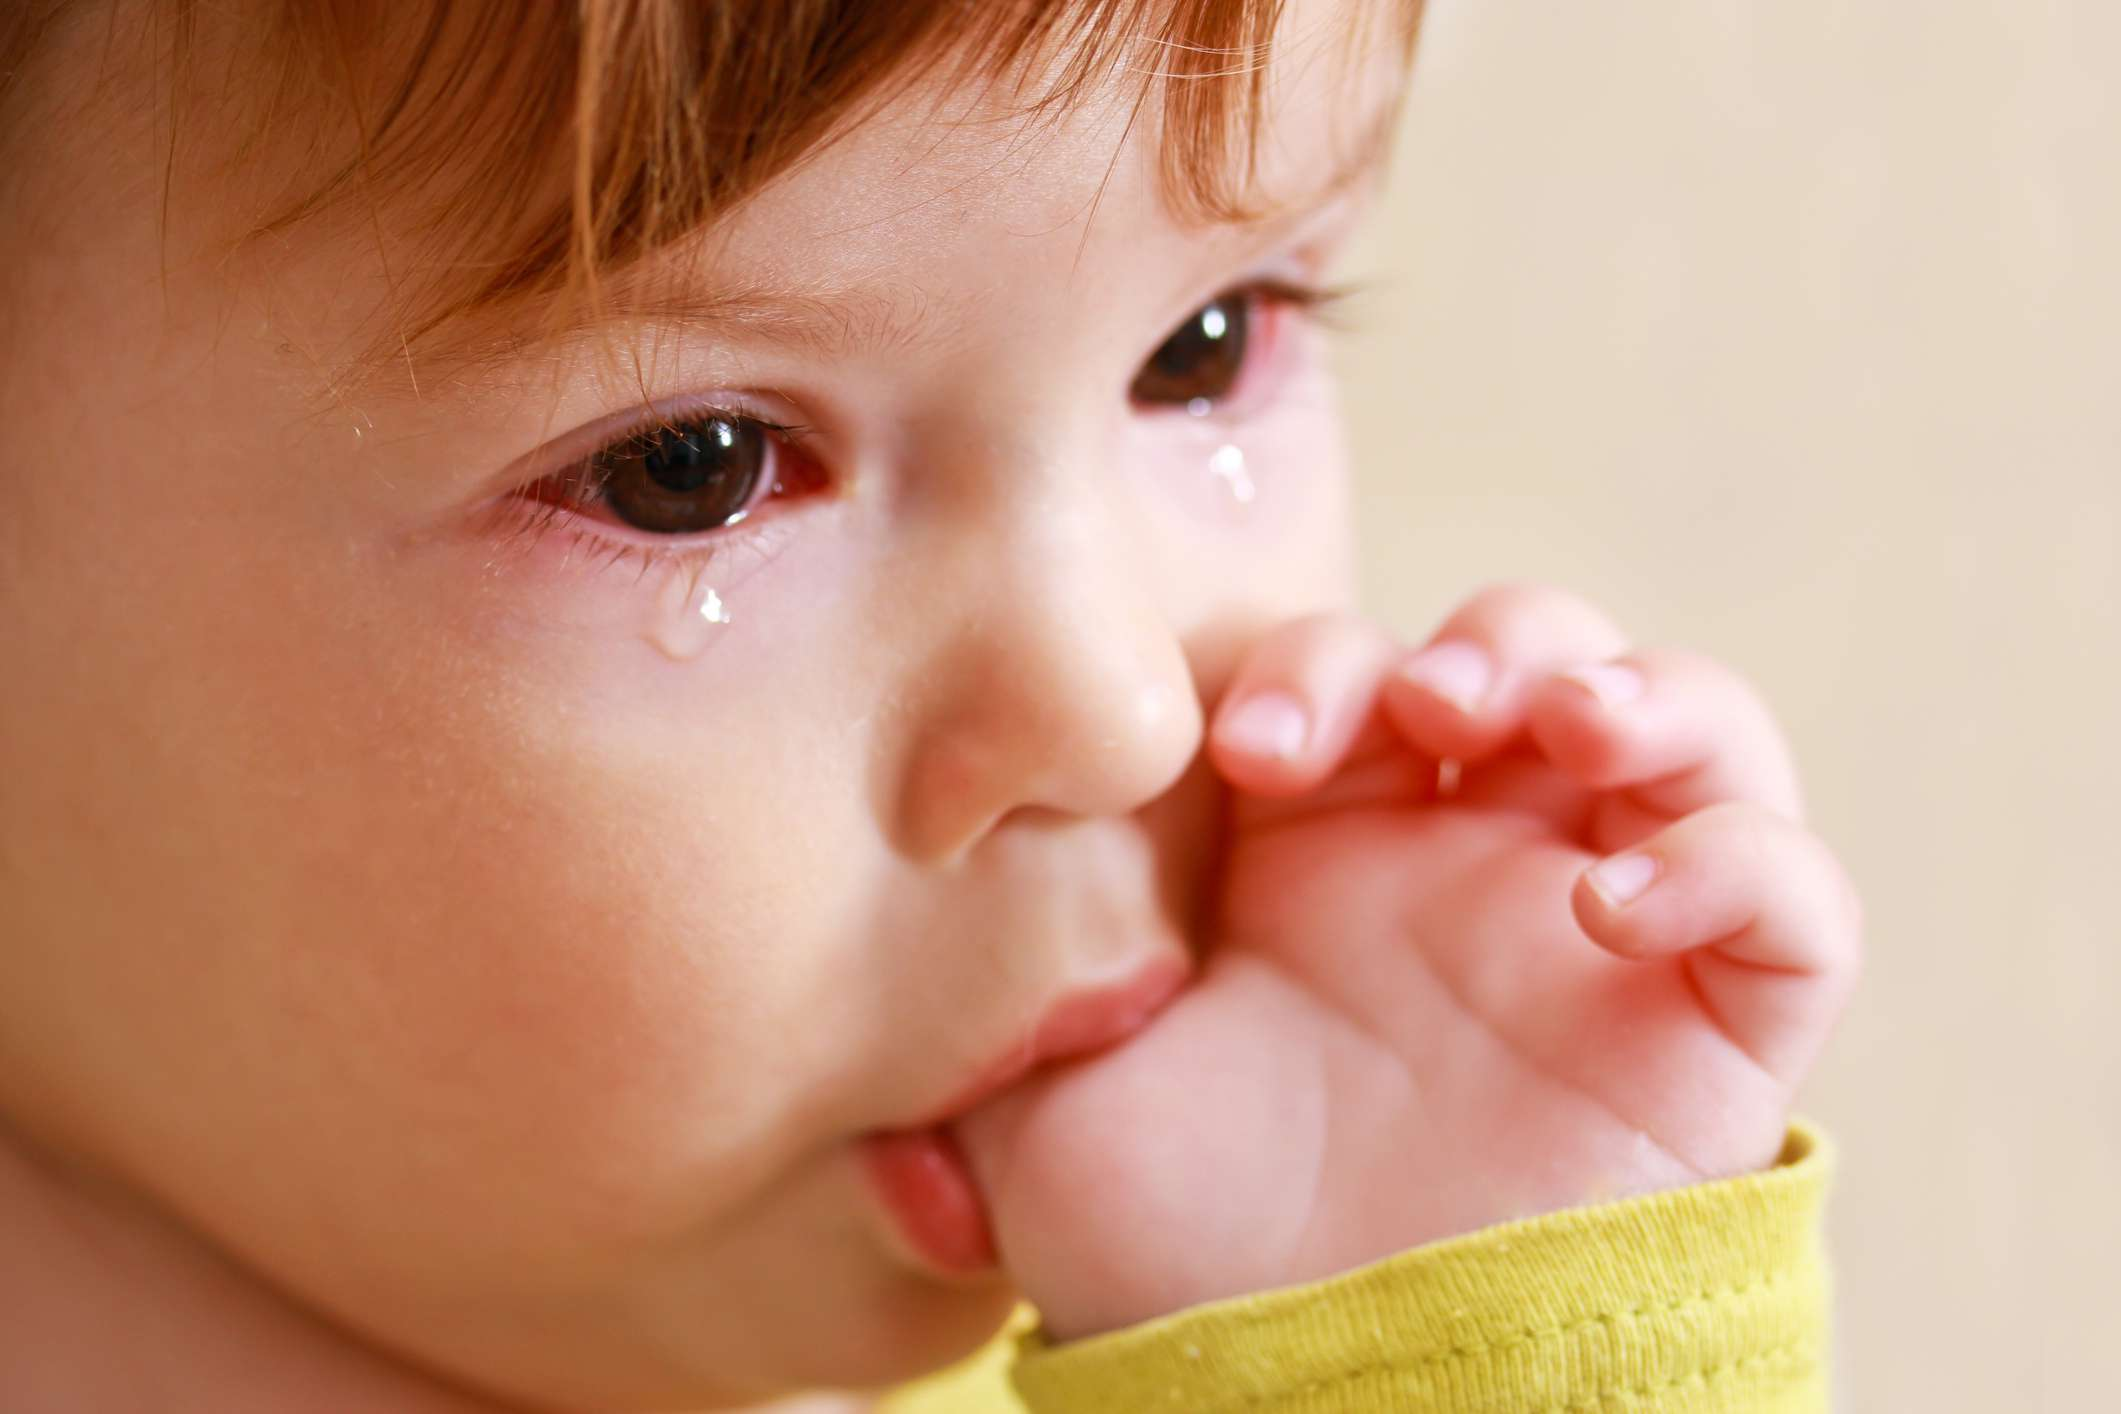 A child with pink eye